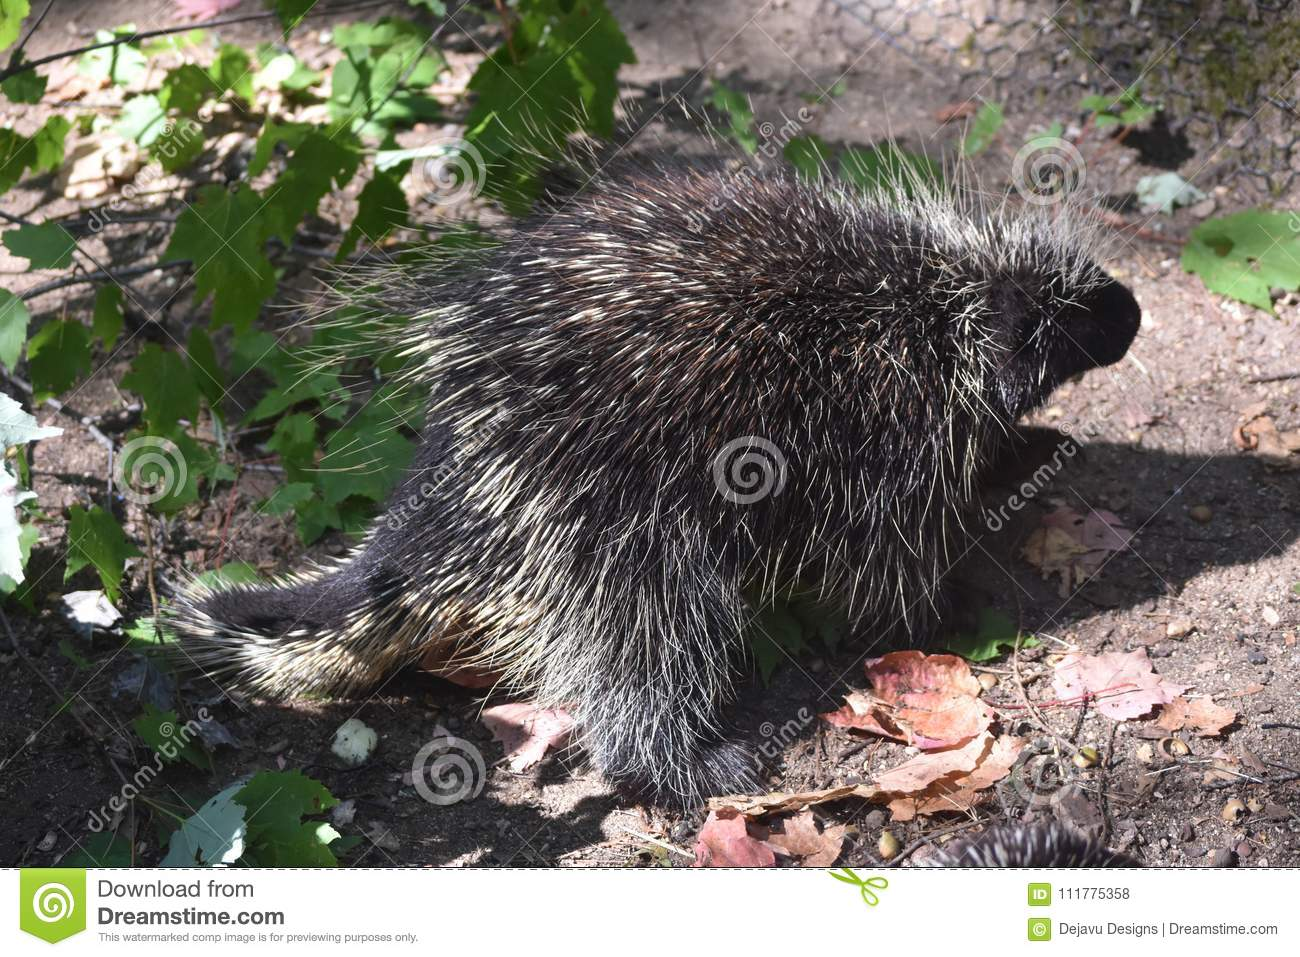 Wild porcupine with large quills covering its body